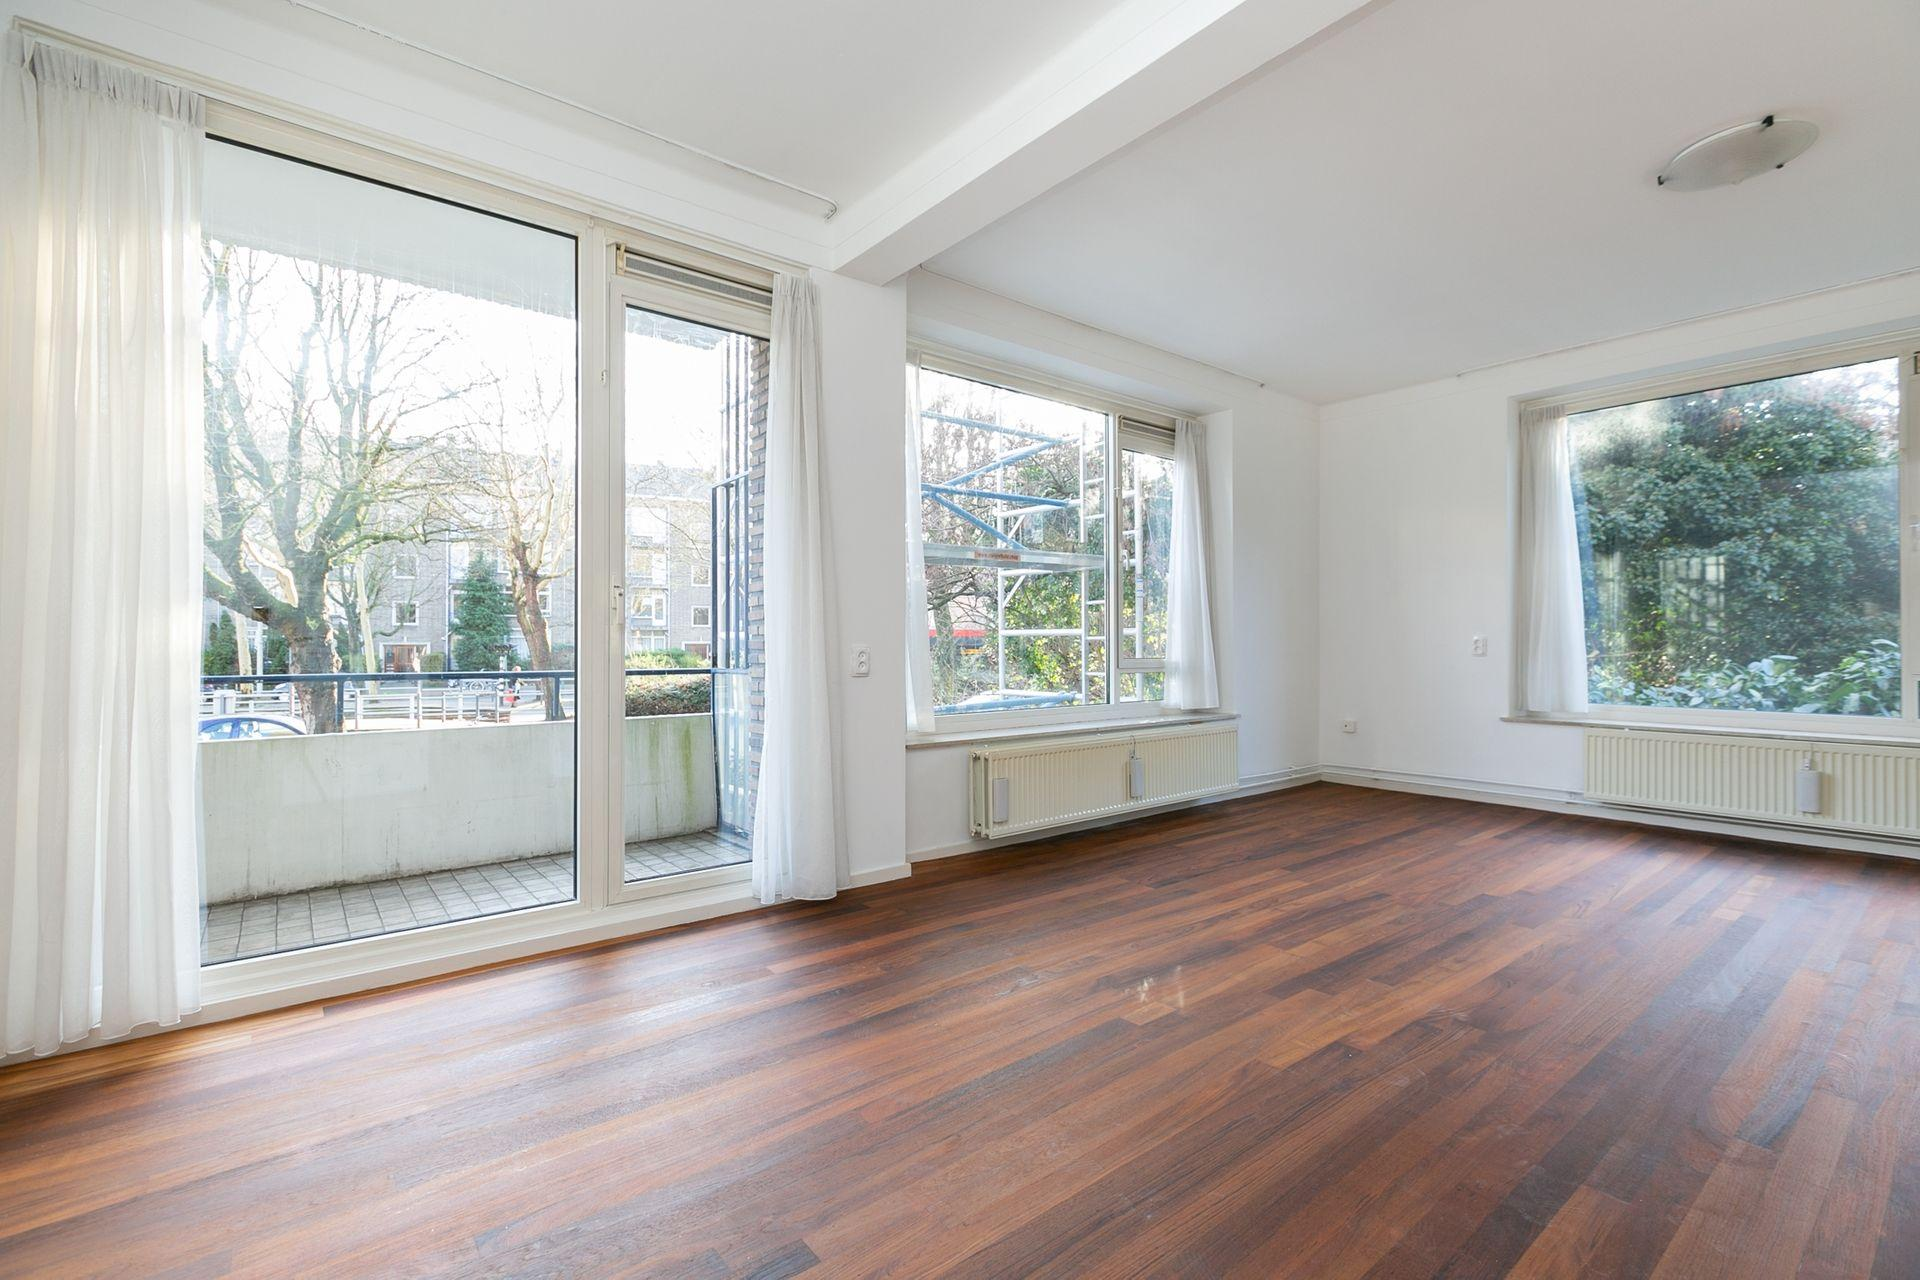 Bekijk de foto van: De Carpentierstraat 135, 2595 HH in Den haag - The Hague Real Estate Services